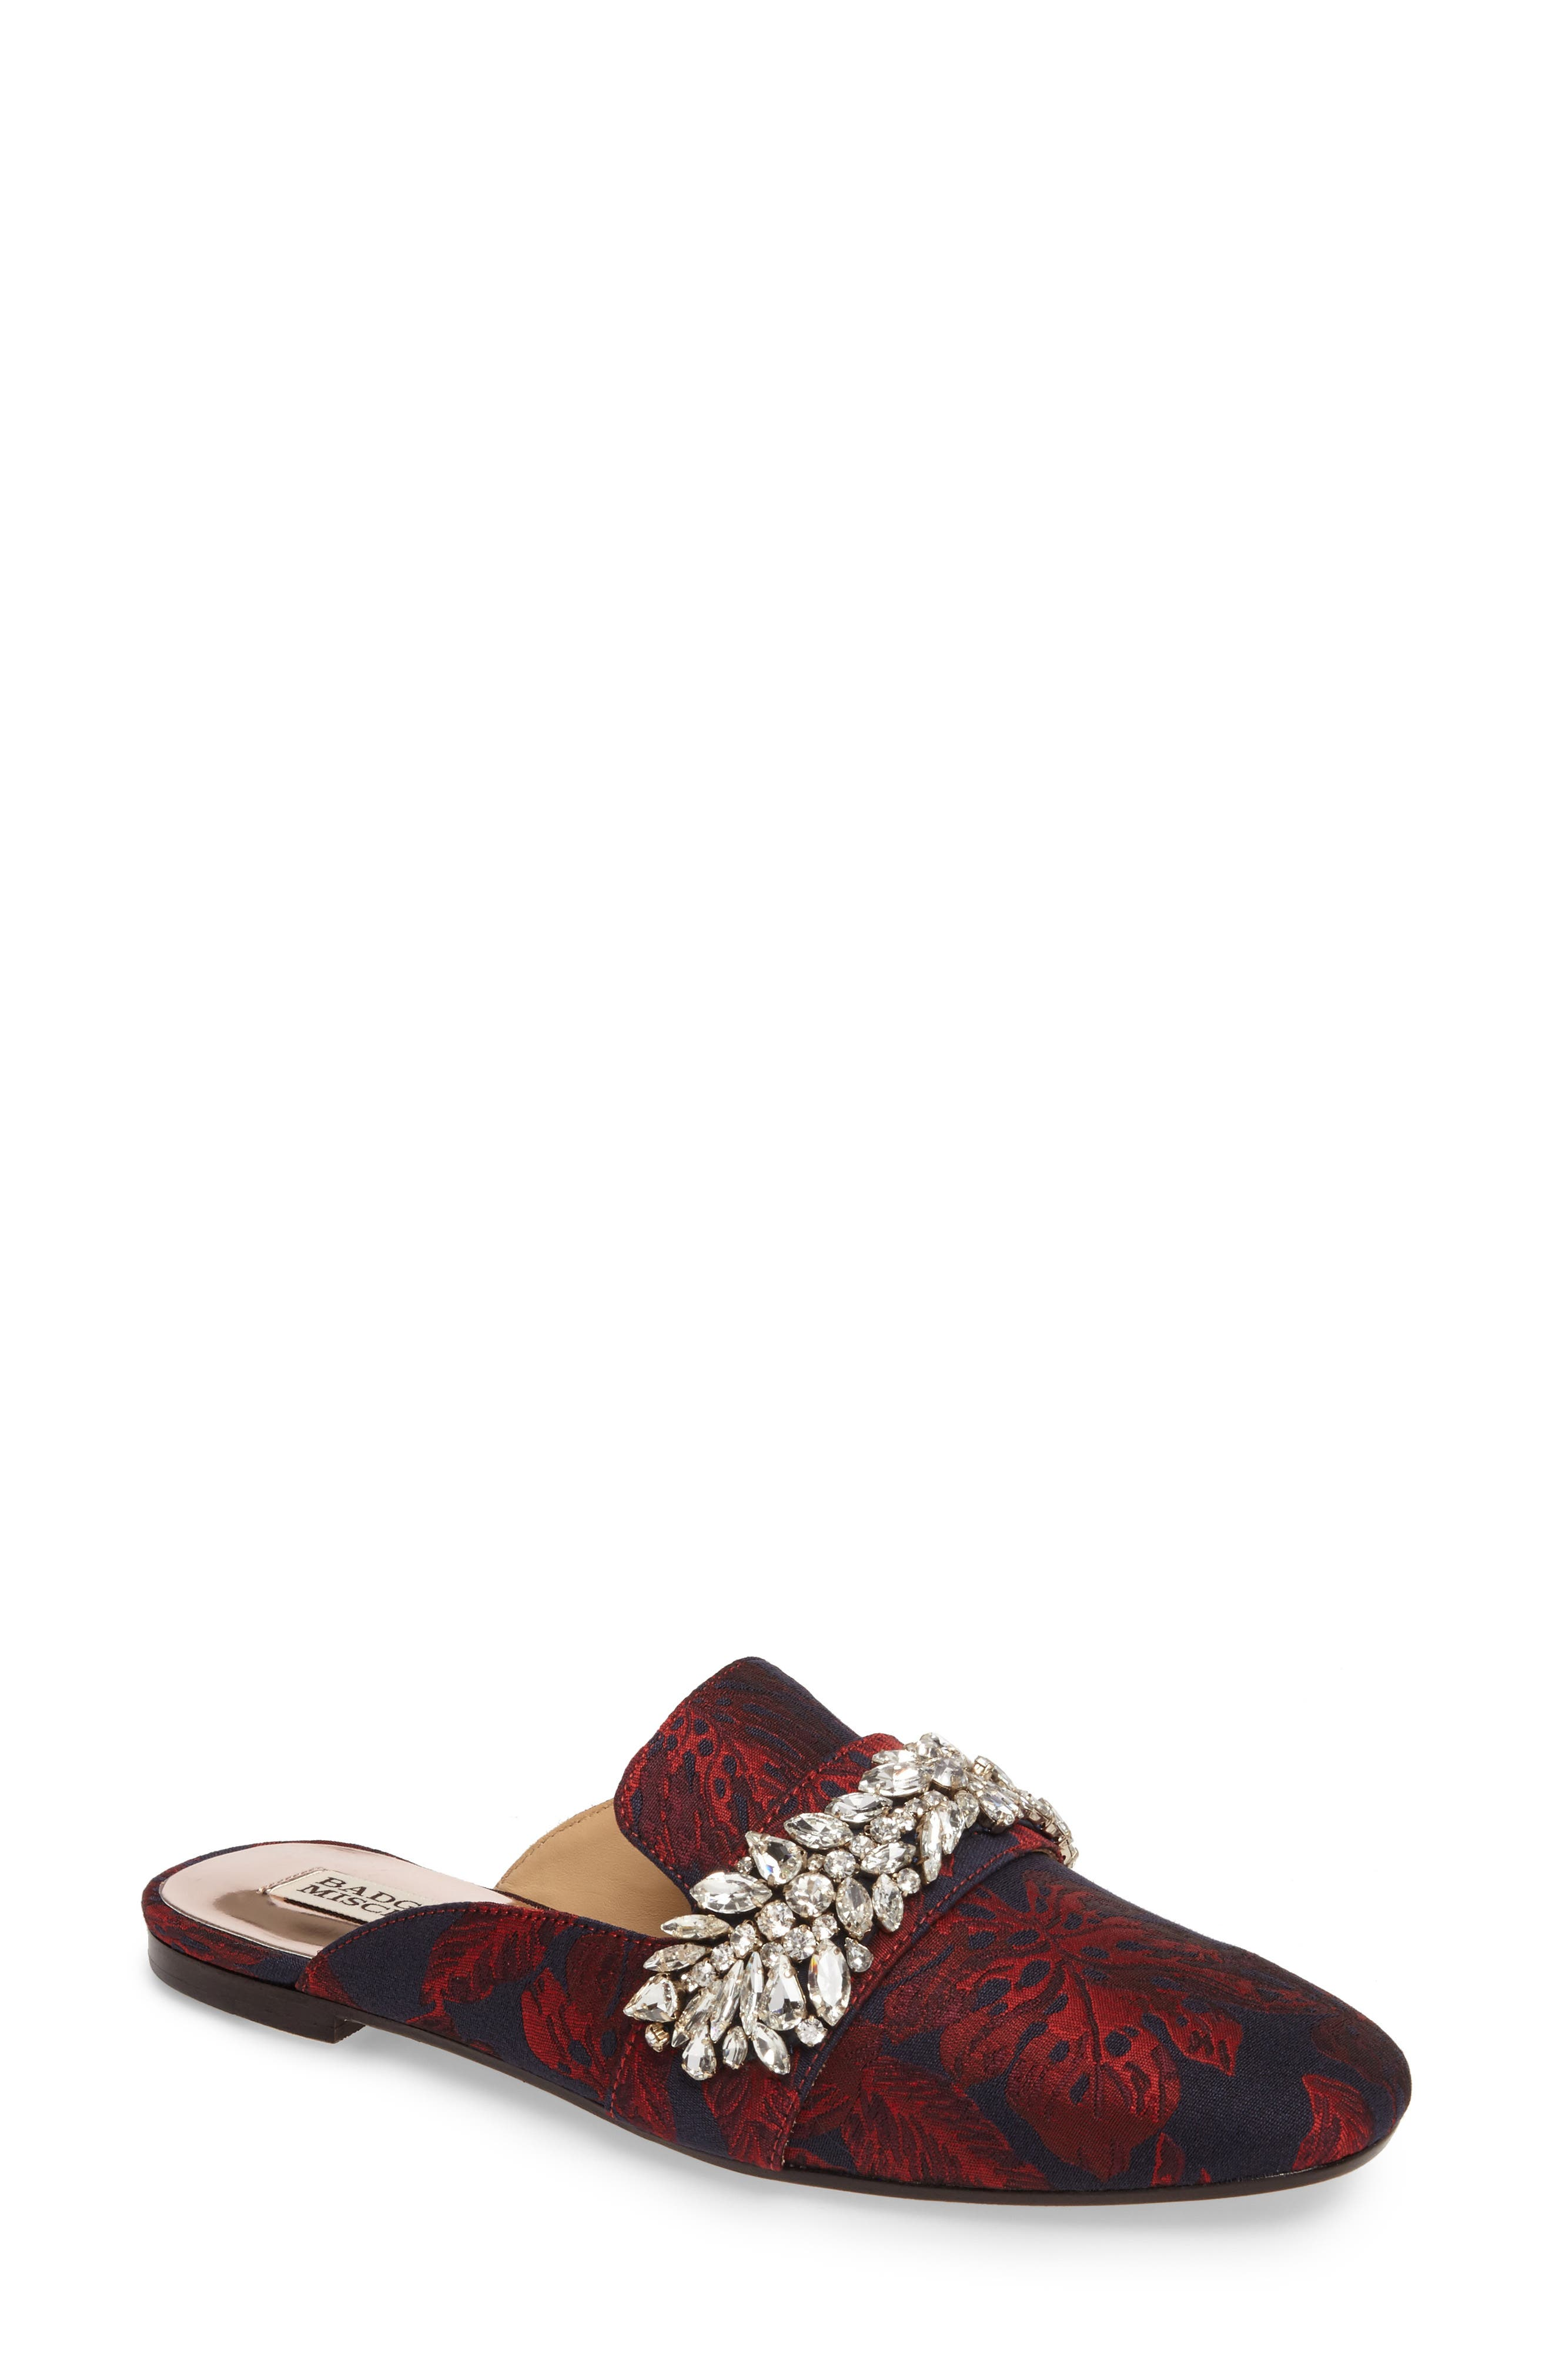 Kana Embellished Loafer Mule,                             Main thumbnail 1, color,                             930